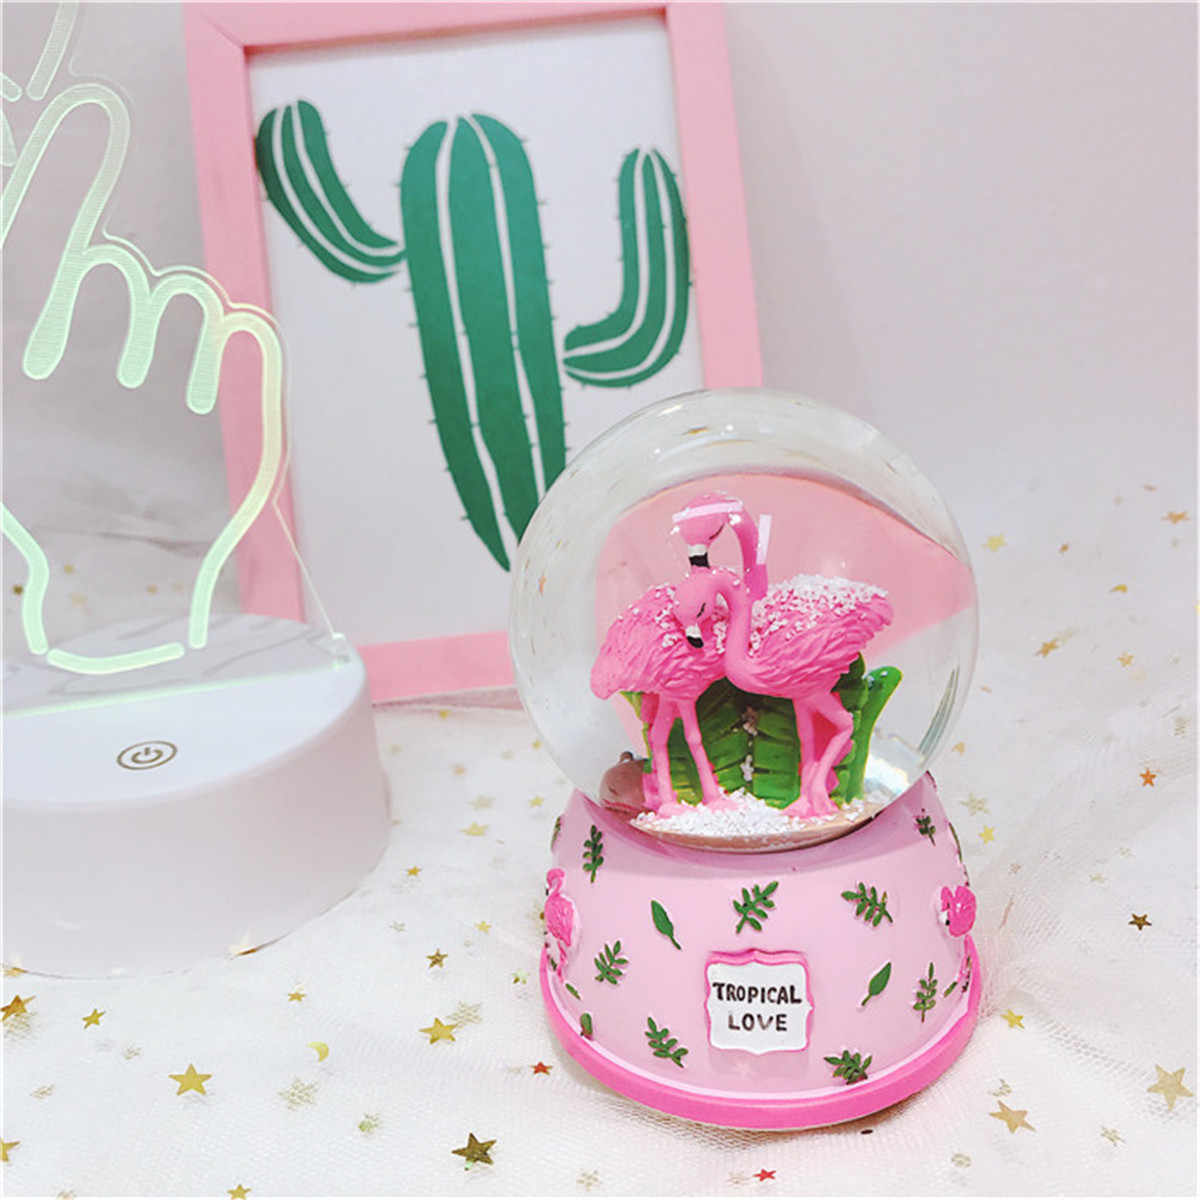 LED Light Electronic Automatic Spray Snowflake Flamingo Musical Water Snow Globe Music Boxes Decor Crafts Valentine's Day Gift